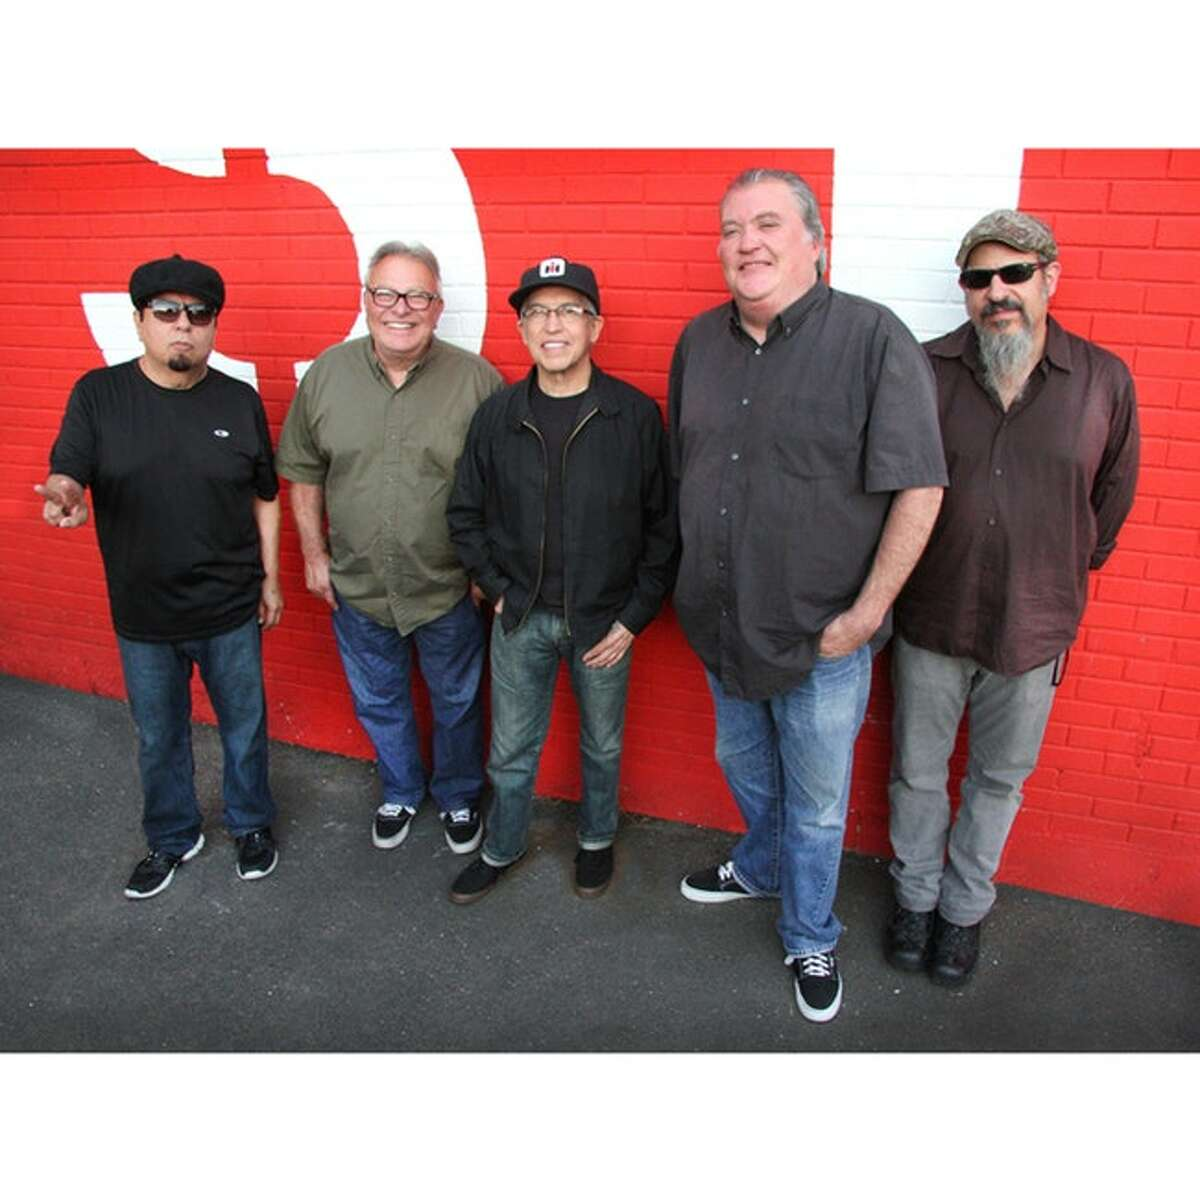 Los Lobos is on tour celebrating their 40th anniversary and will perform Sunday at Cohoes Music Hall. Learn more.